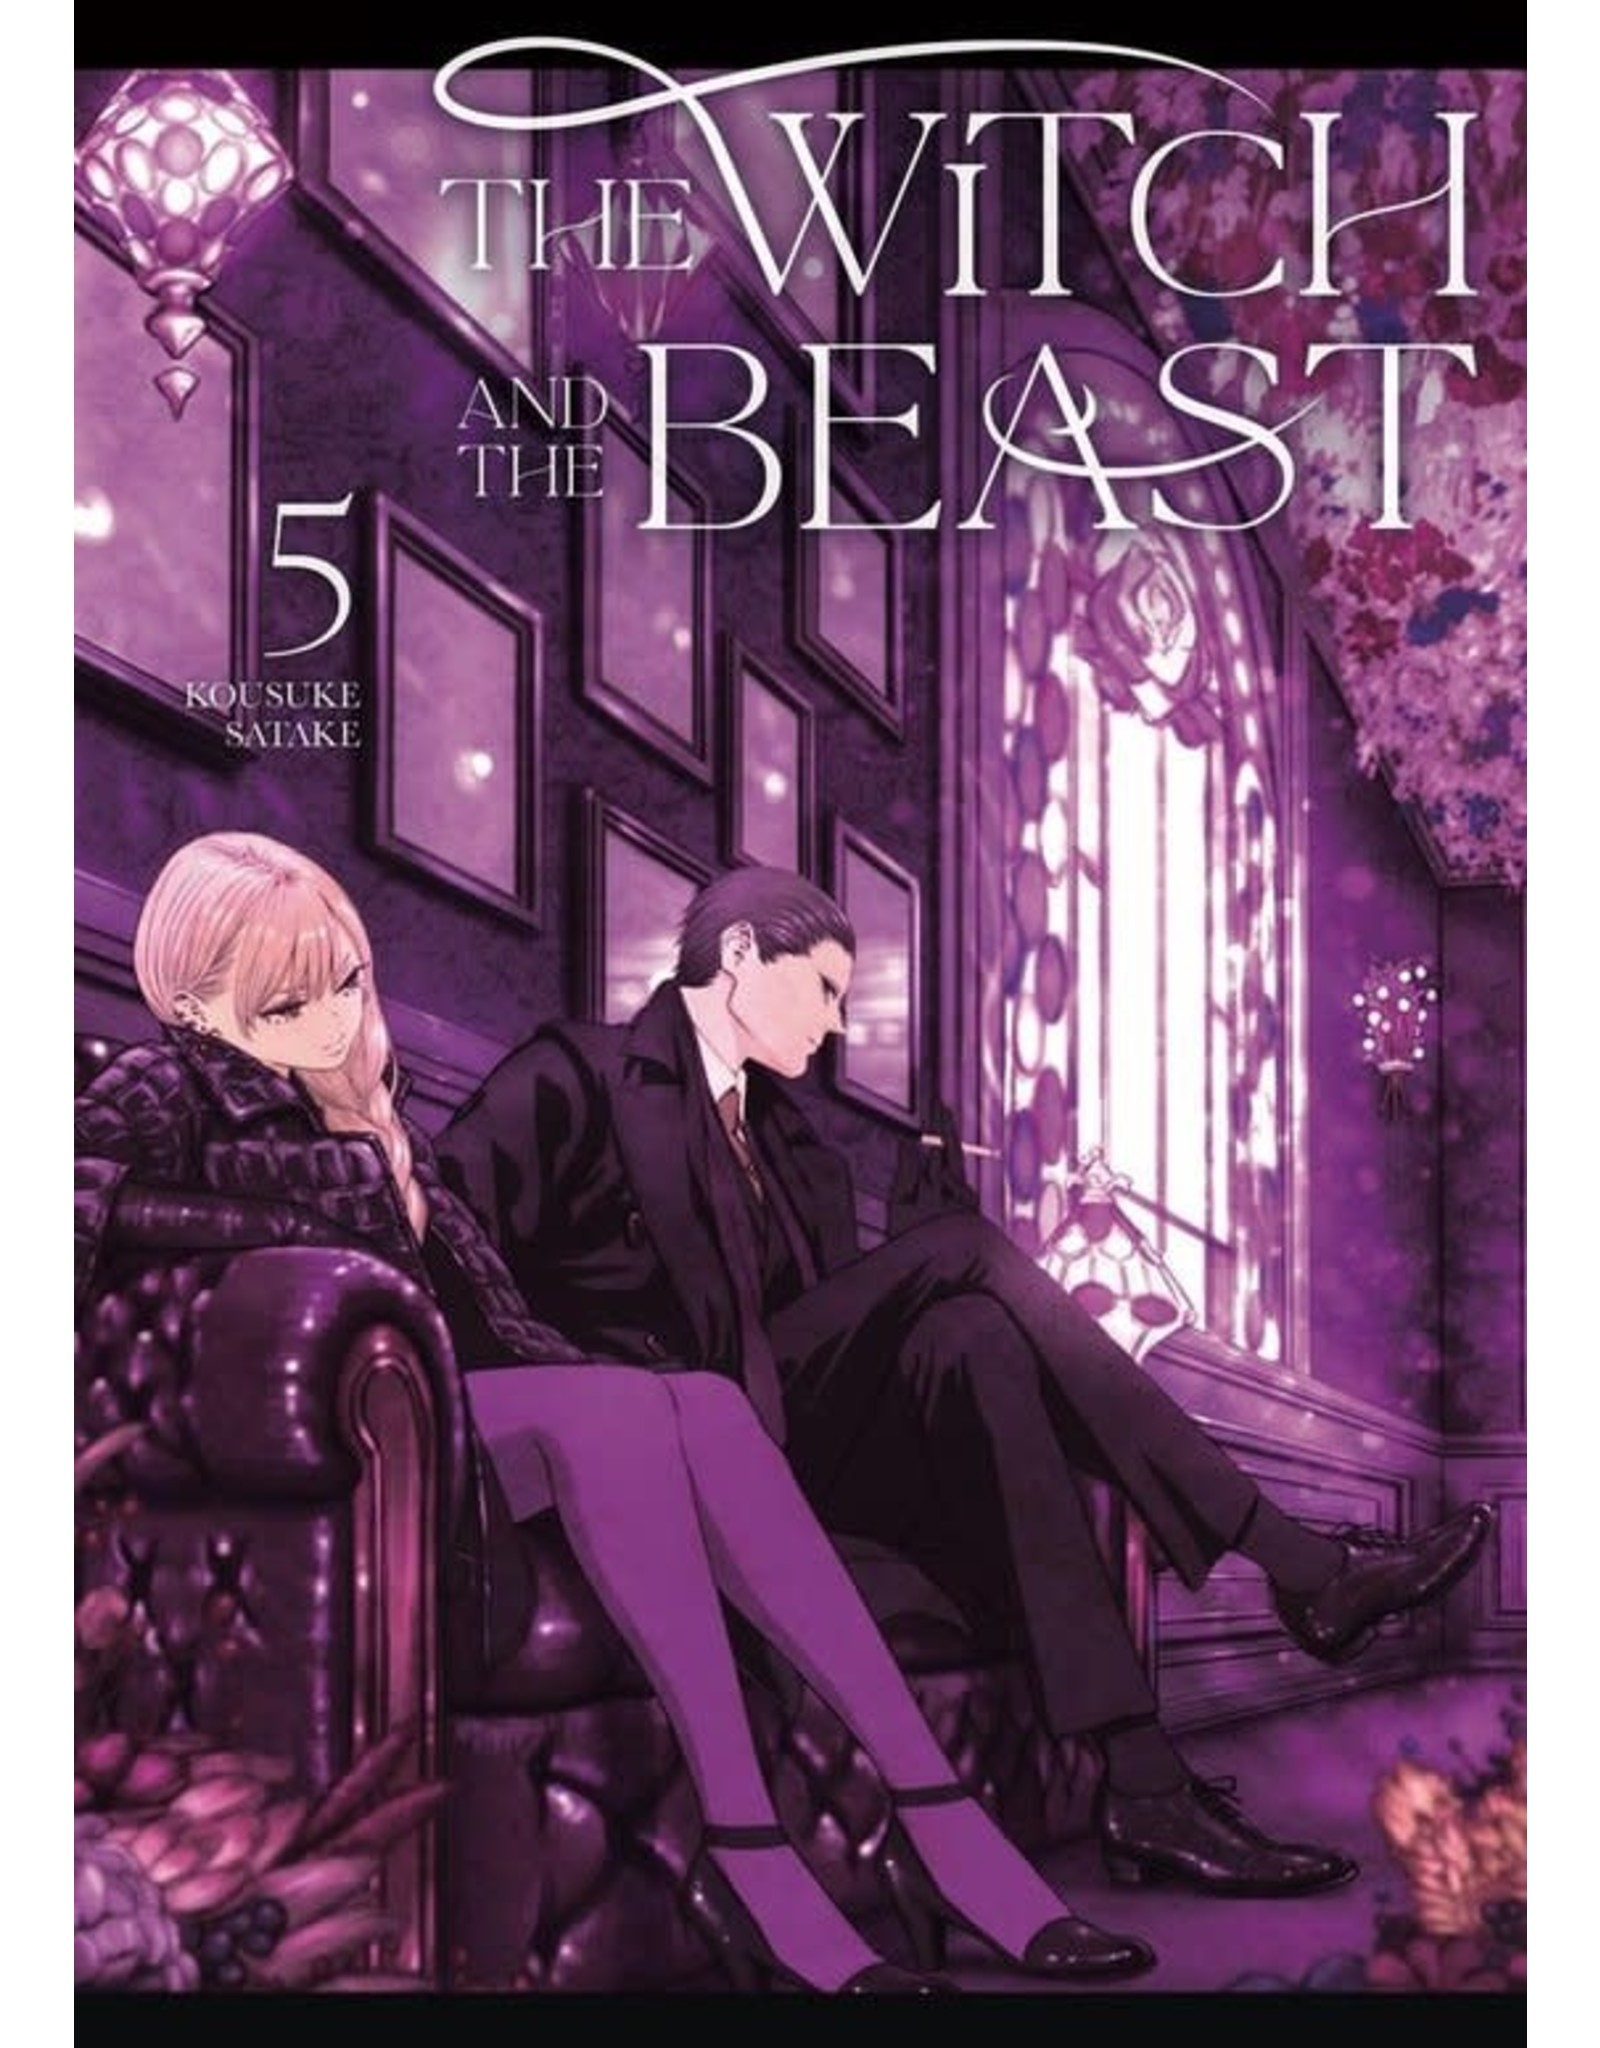 The Witch and The Beast 5 (Engelstalig) - Manga